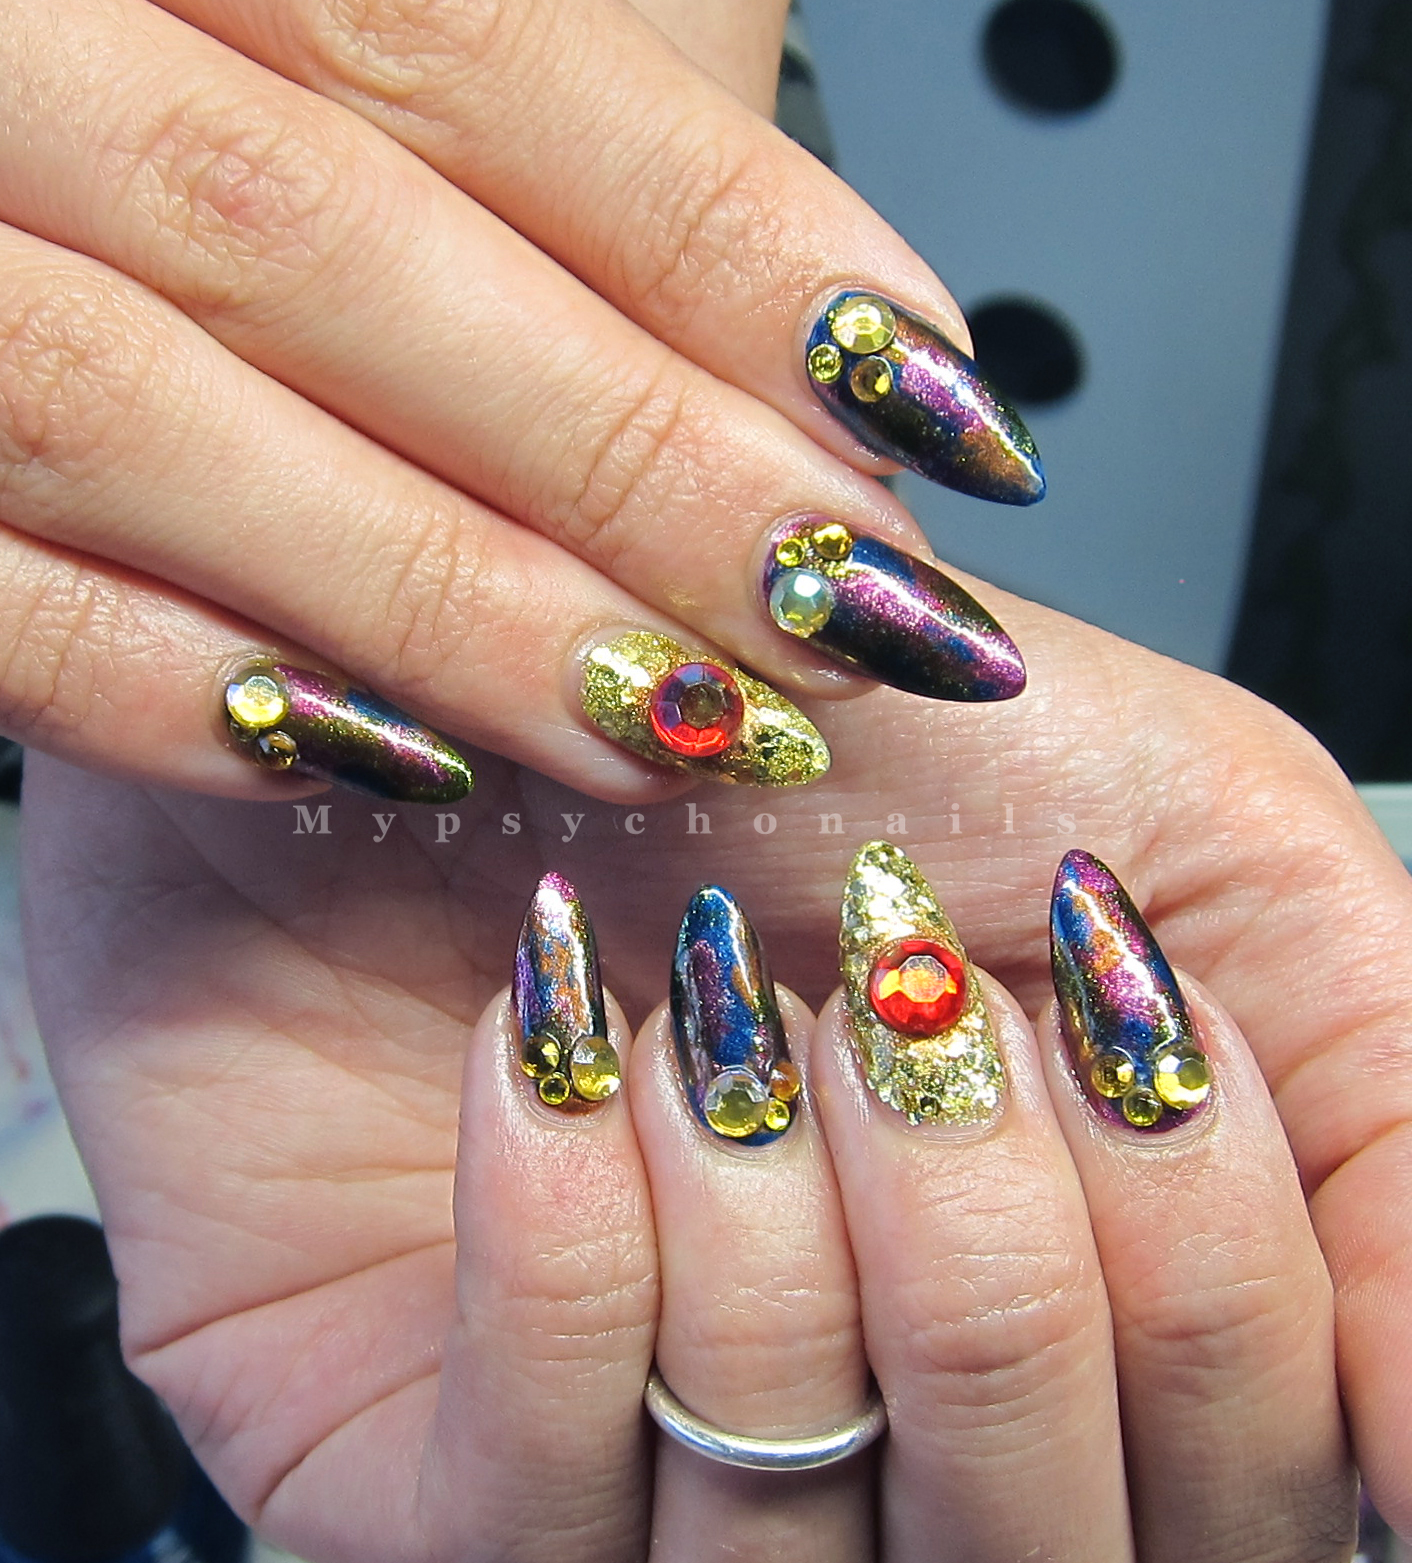 Mypsychonails: Oil spill glamour nails